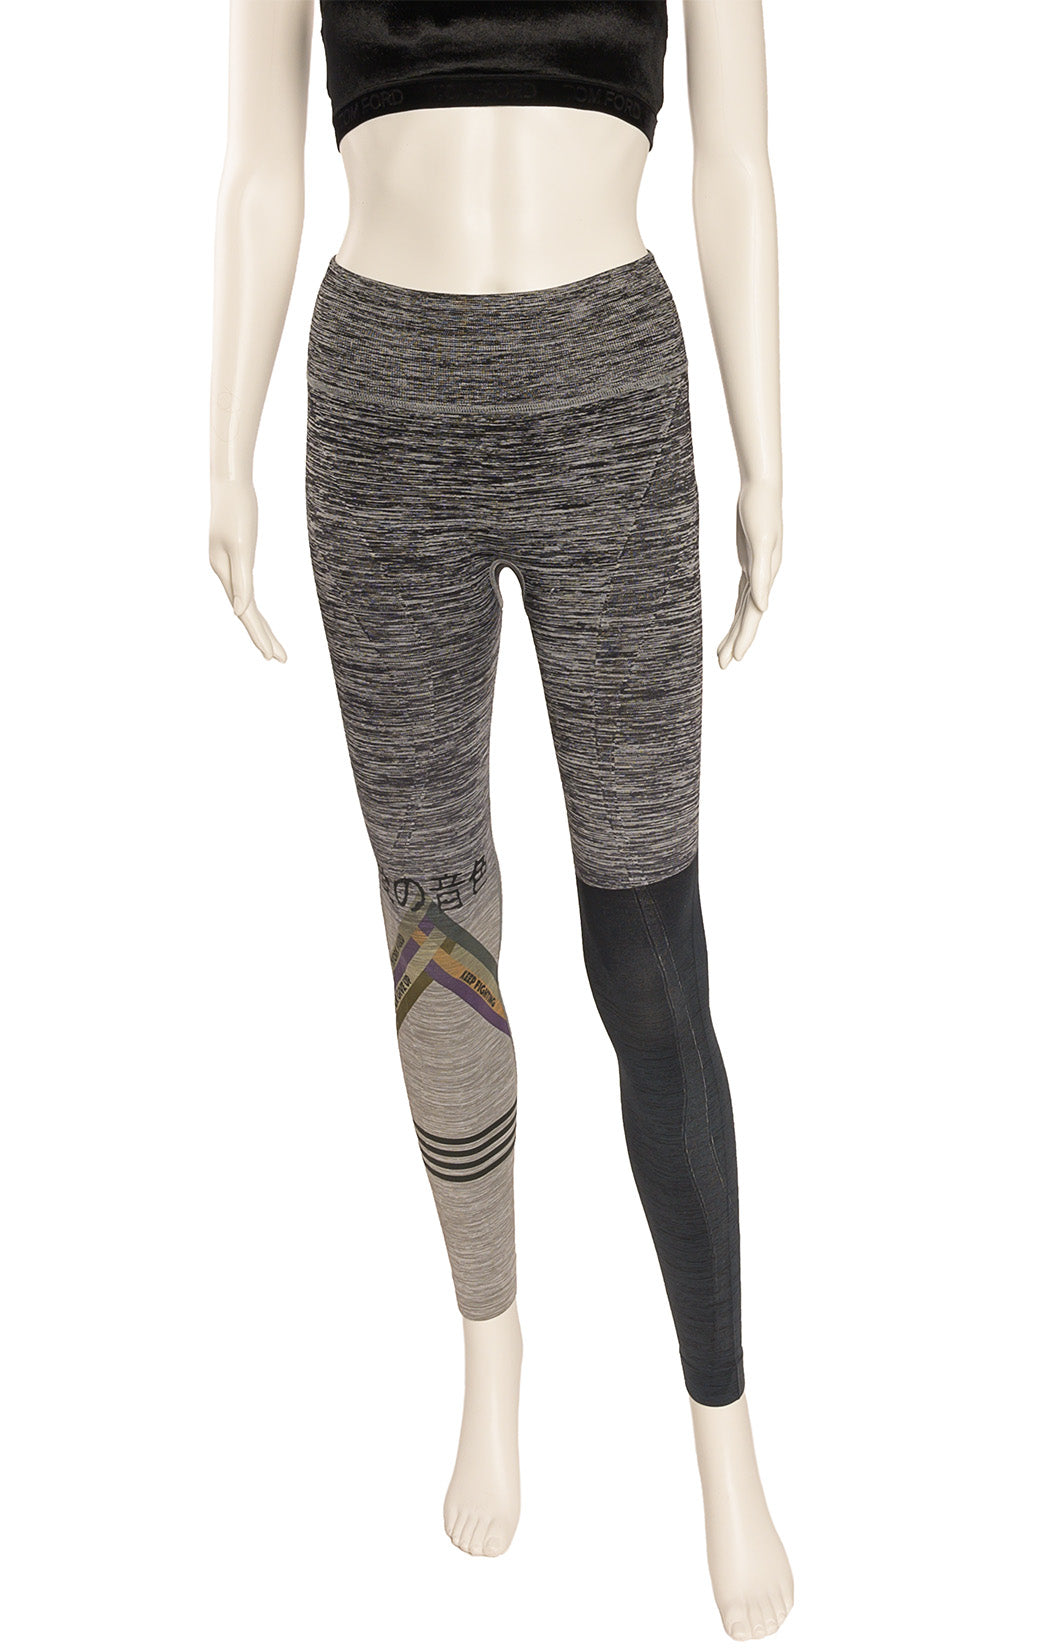 Front view of YEBA Leggings Size: Small